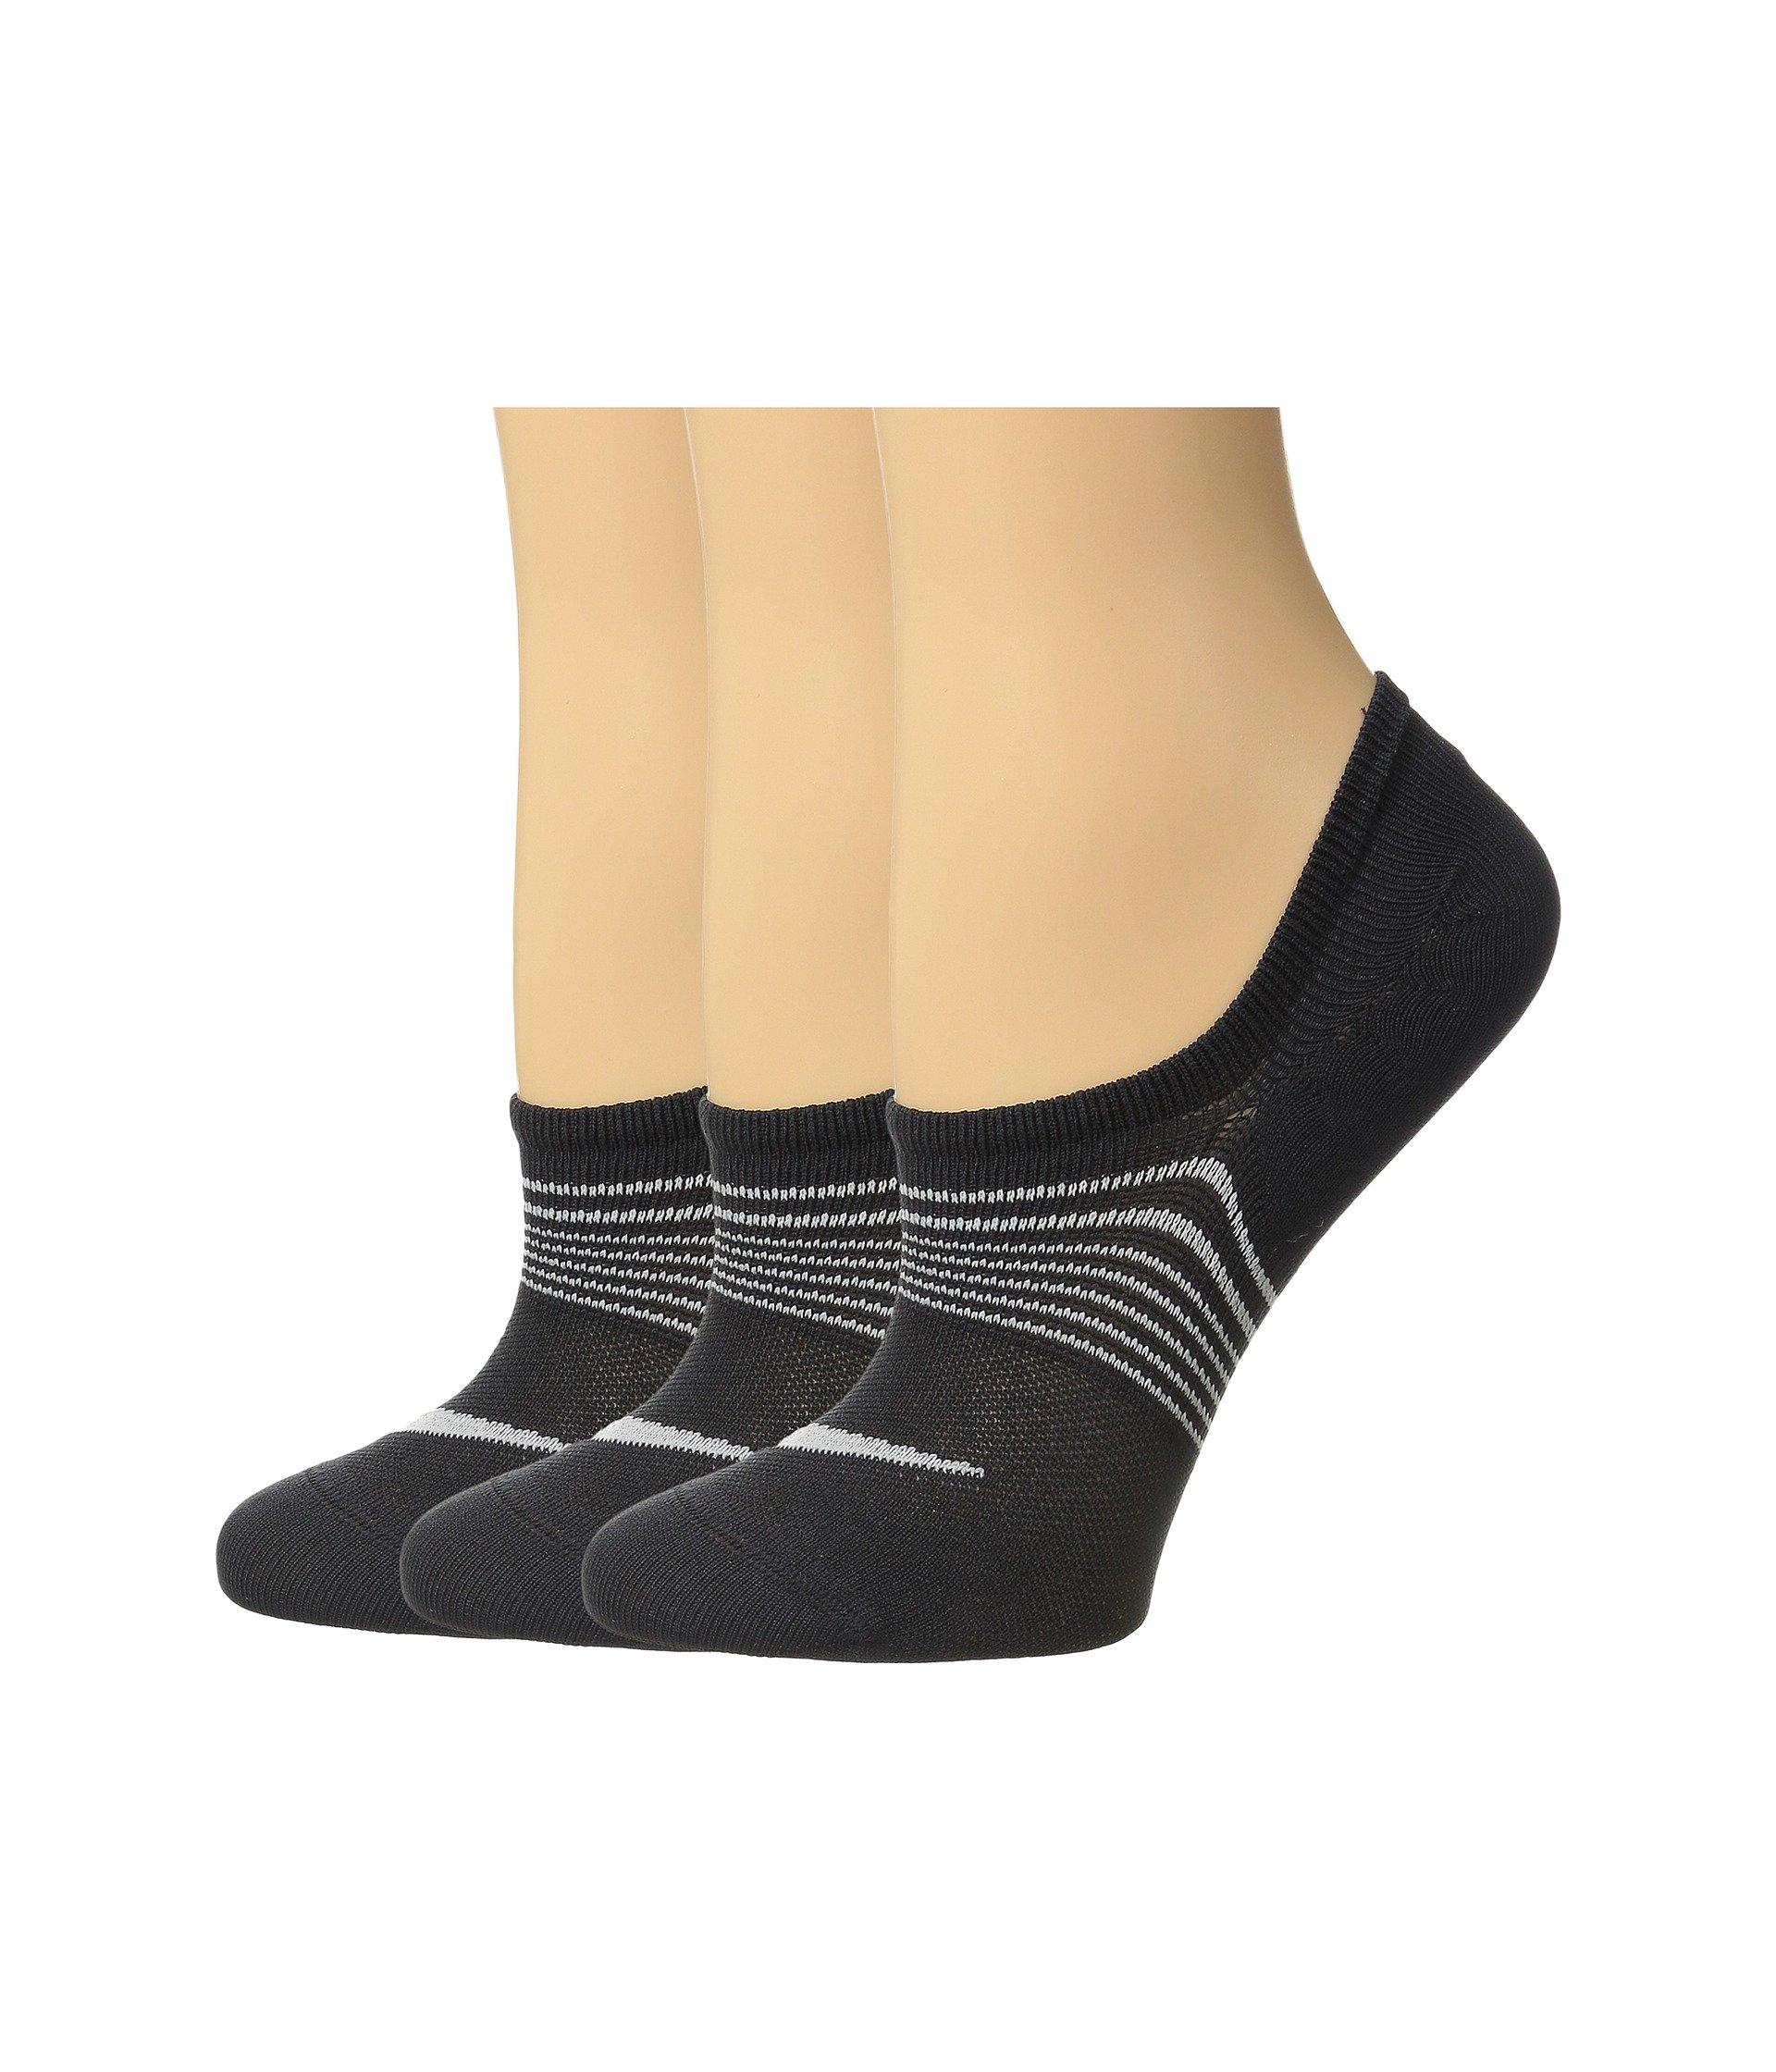 c655a4a002 Nike. Black 3-pair Pack Lightweight Footie (multicolor 19) Women's No Show  Socks Shoes